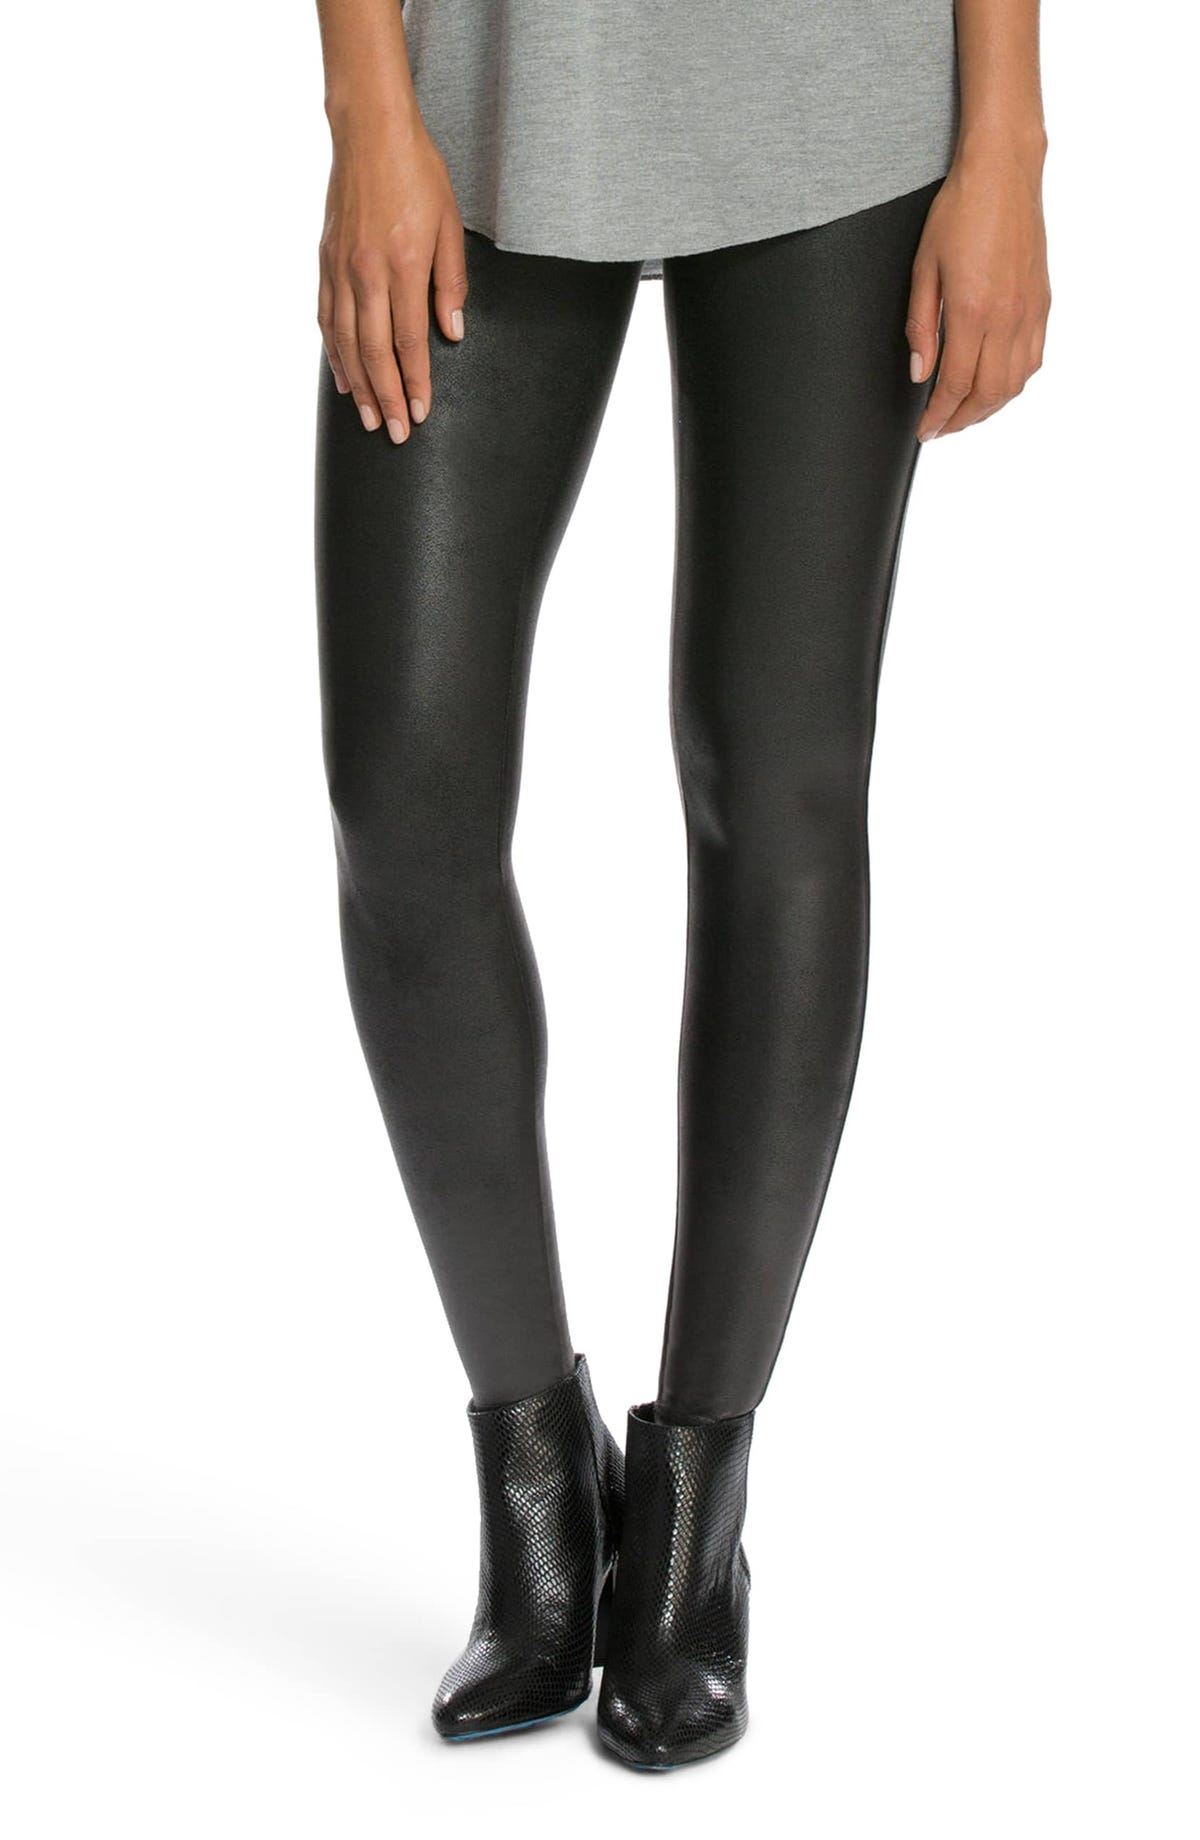 4ff074950186fb Best Black Leggings - Reviews On Top Brands & Styles